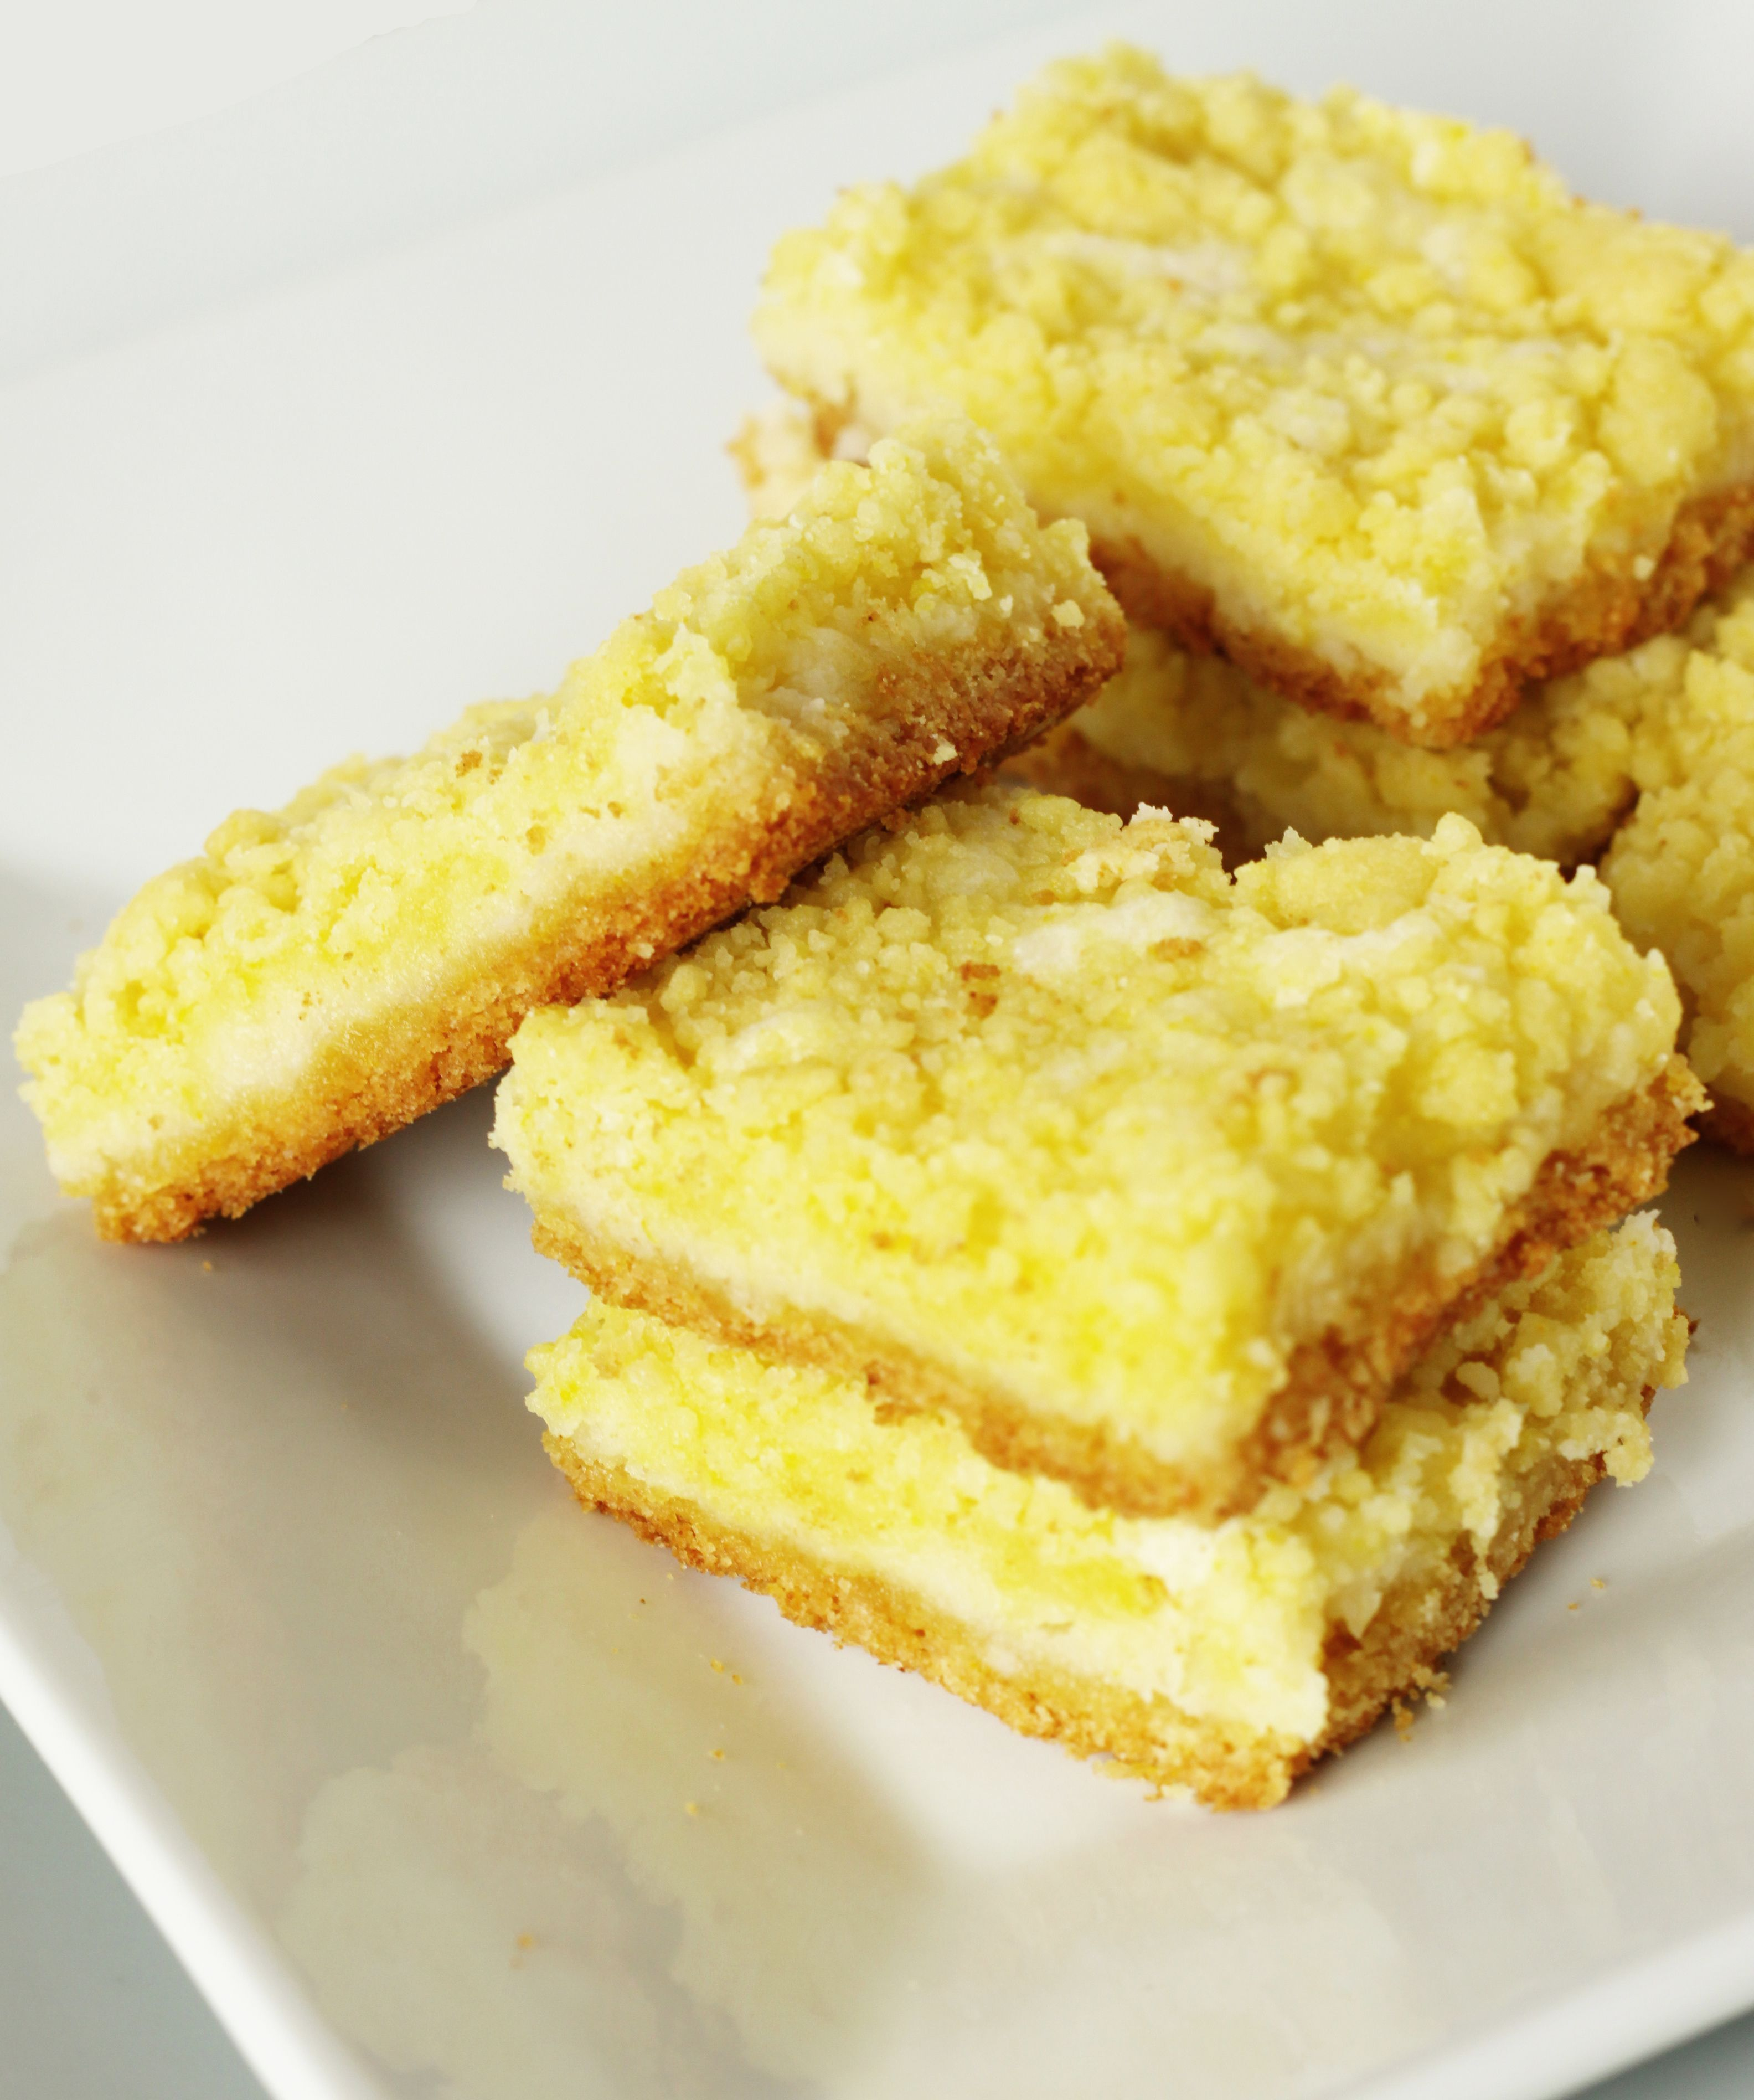 Friday Bake-Off: Cake Mix Lemon Bars